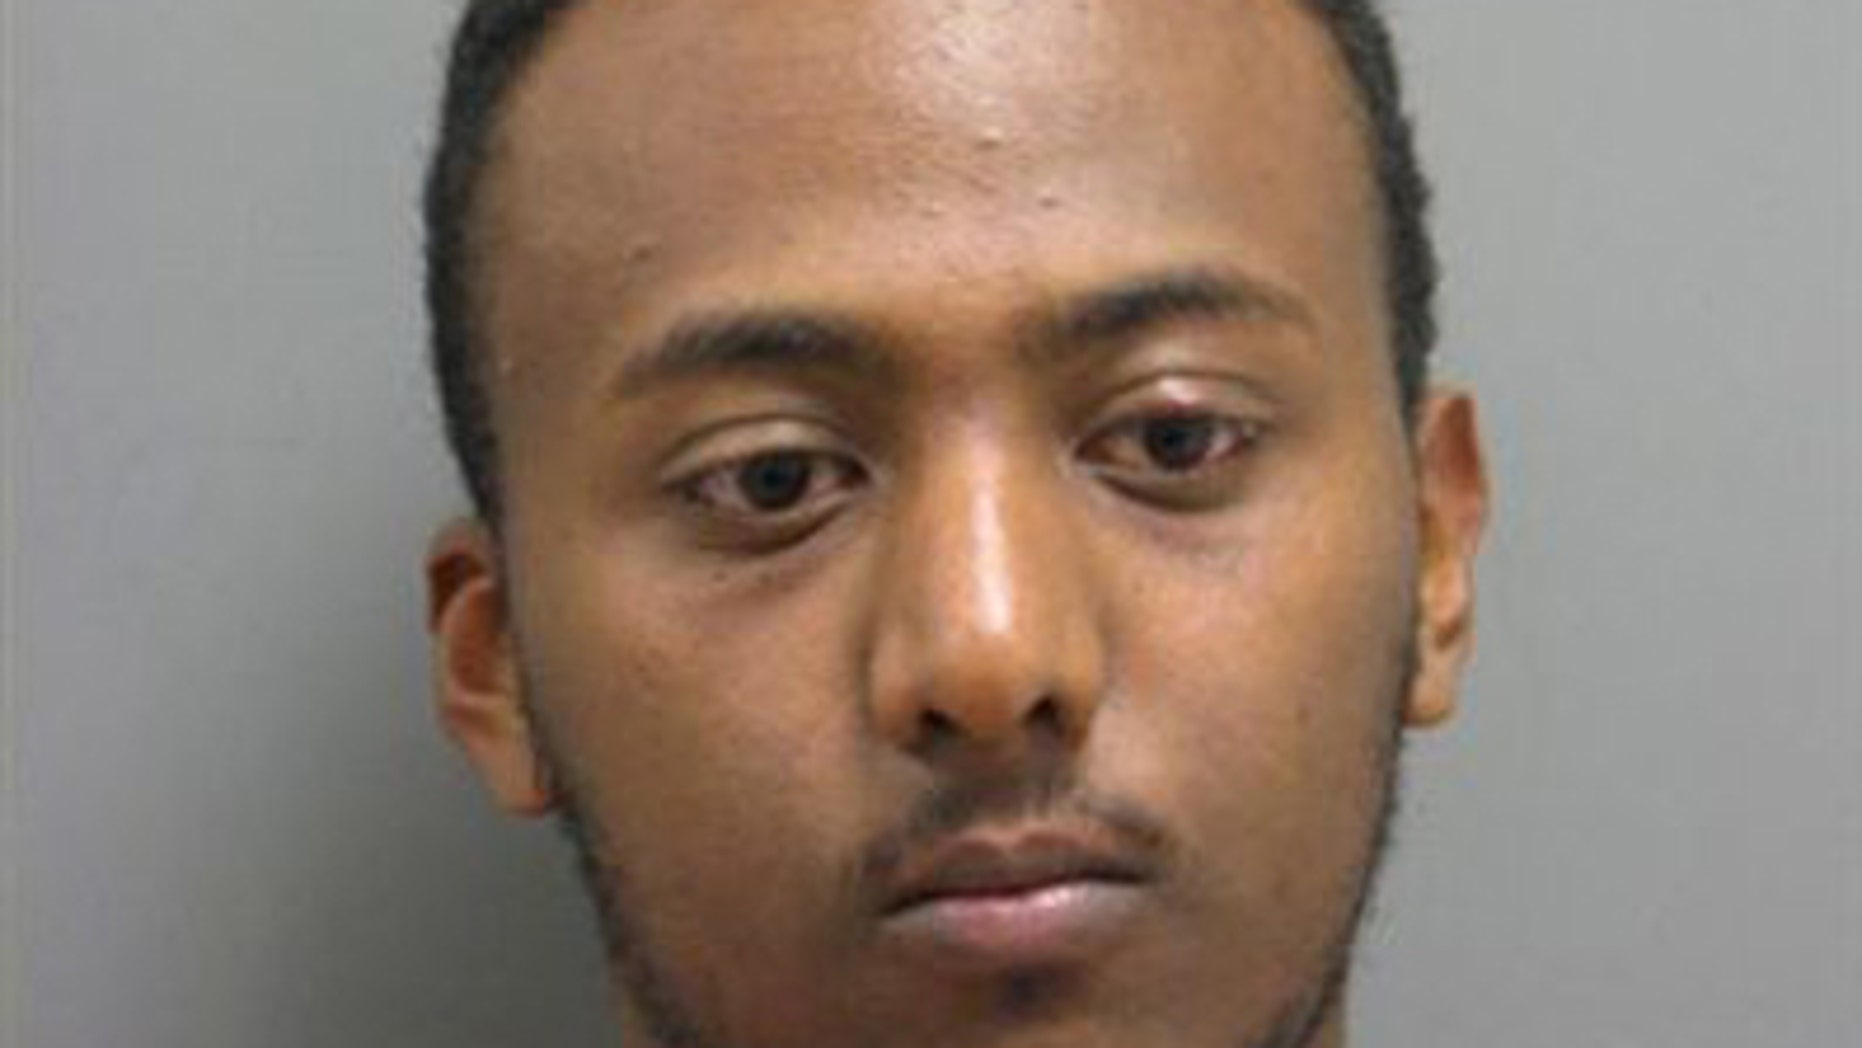 Yonathan Melaku is charged with four counts of grand larceny.